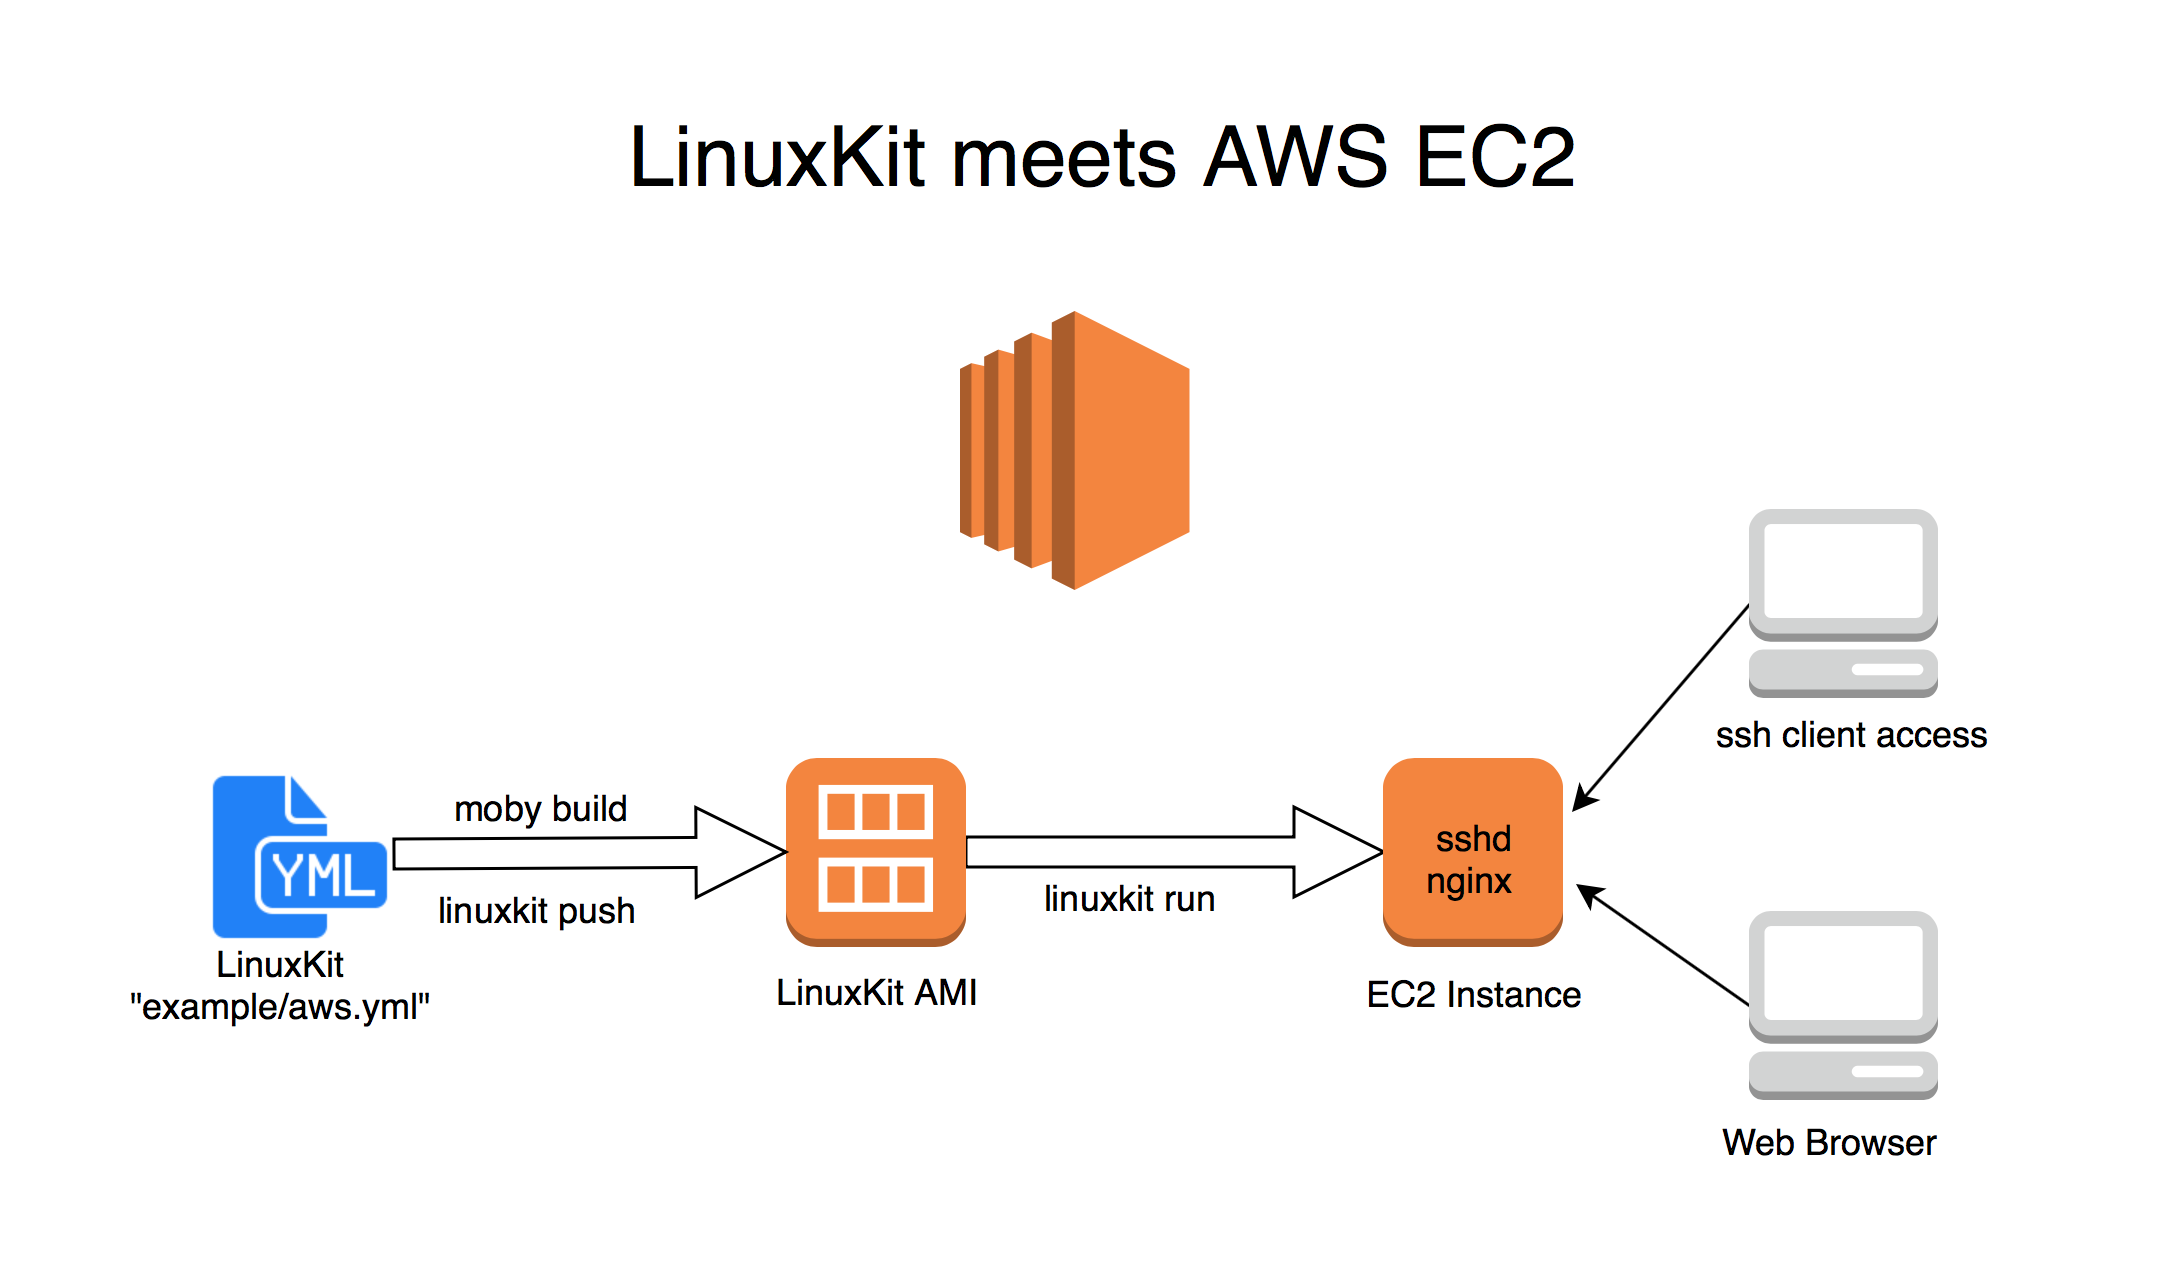 LinuxKit meets AWS, a technical POC